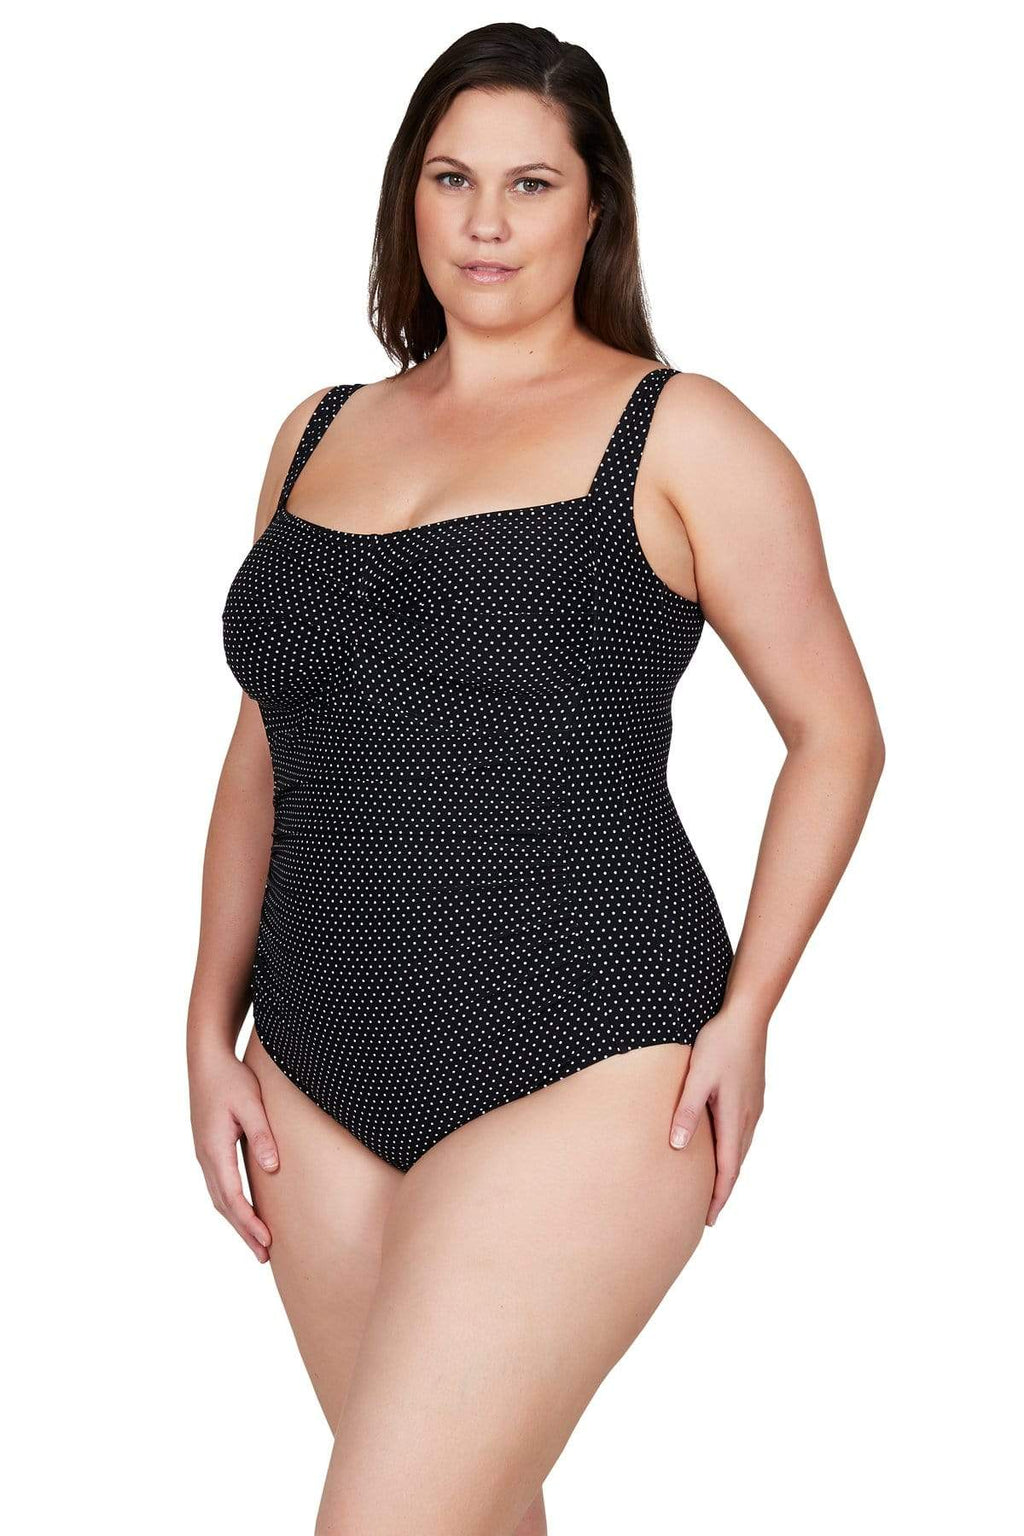 Artesands One Piece Black Polka Rococo Botticelli One Piece Plus Size Curvy